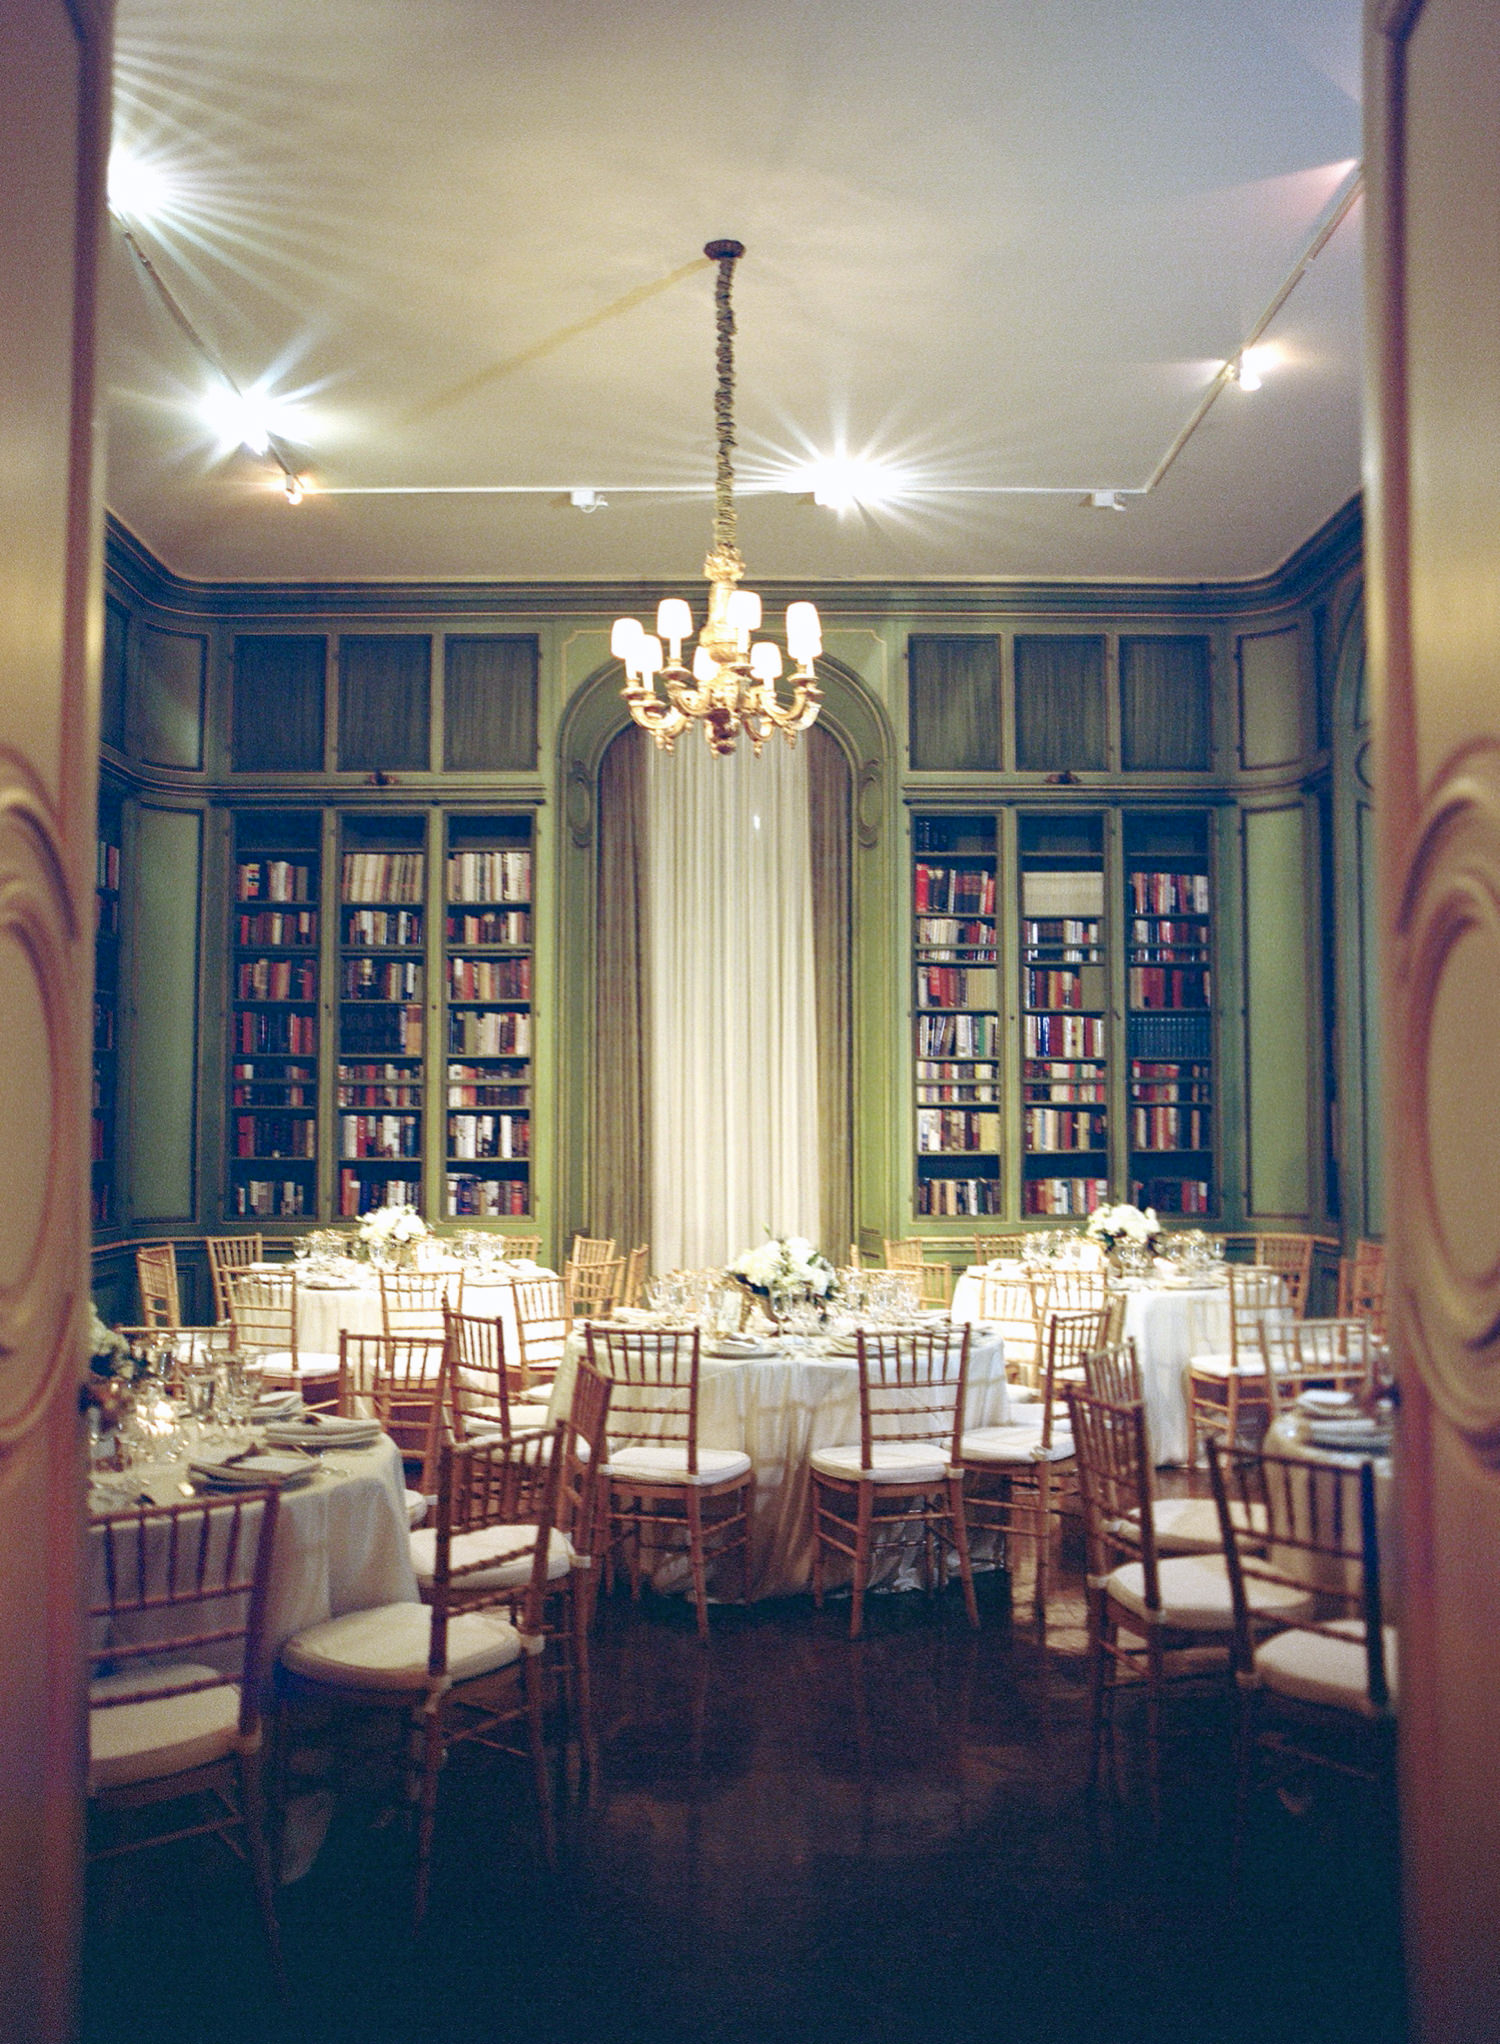 meridian house reception decor library